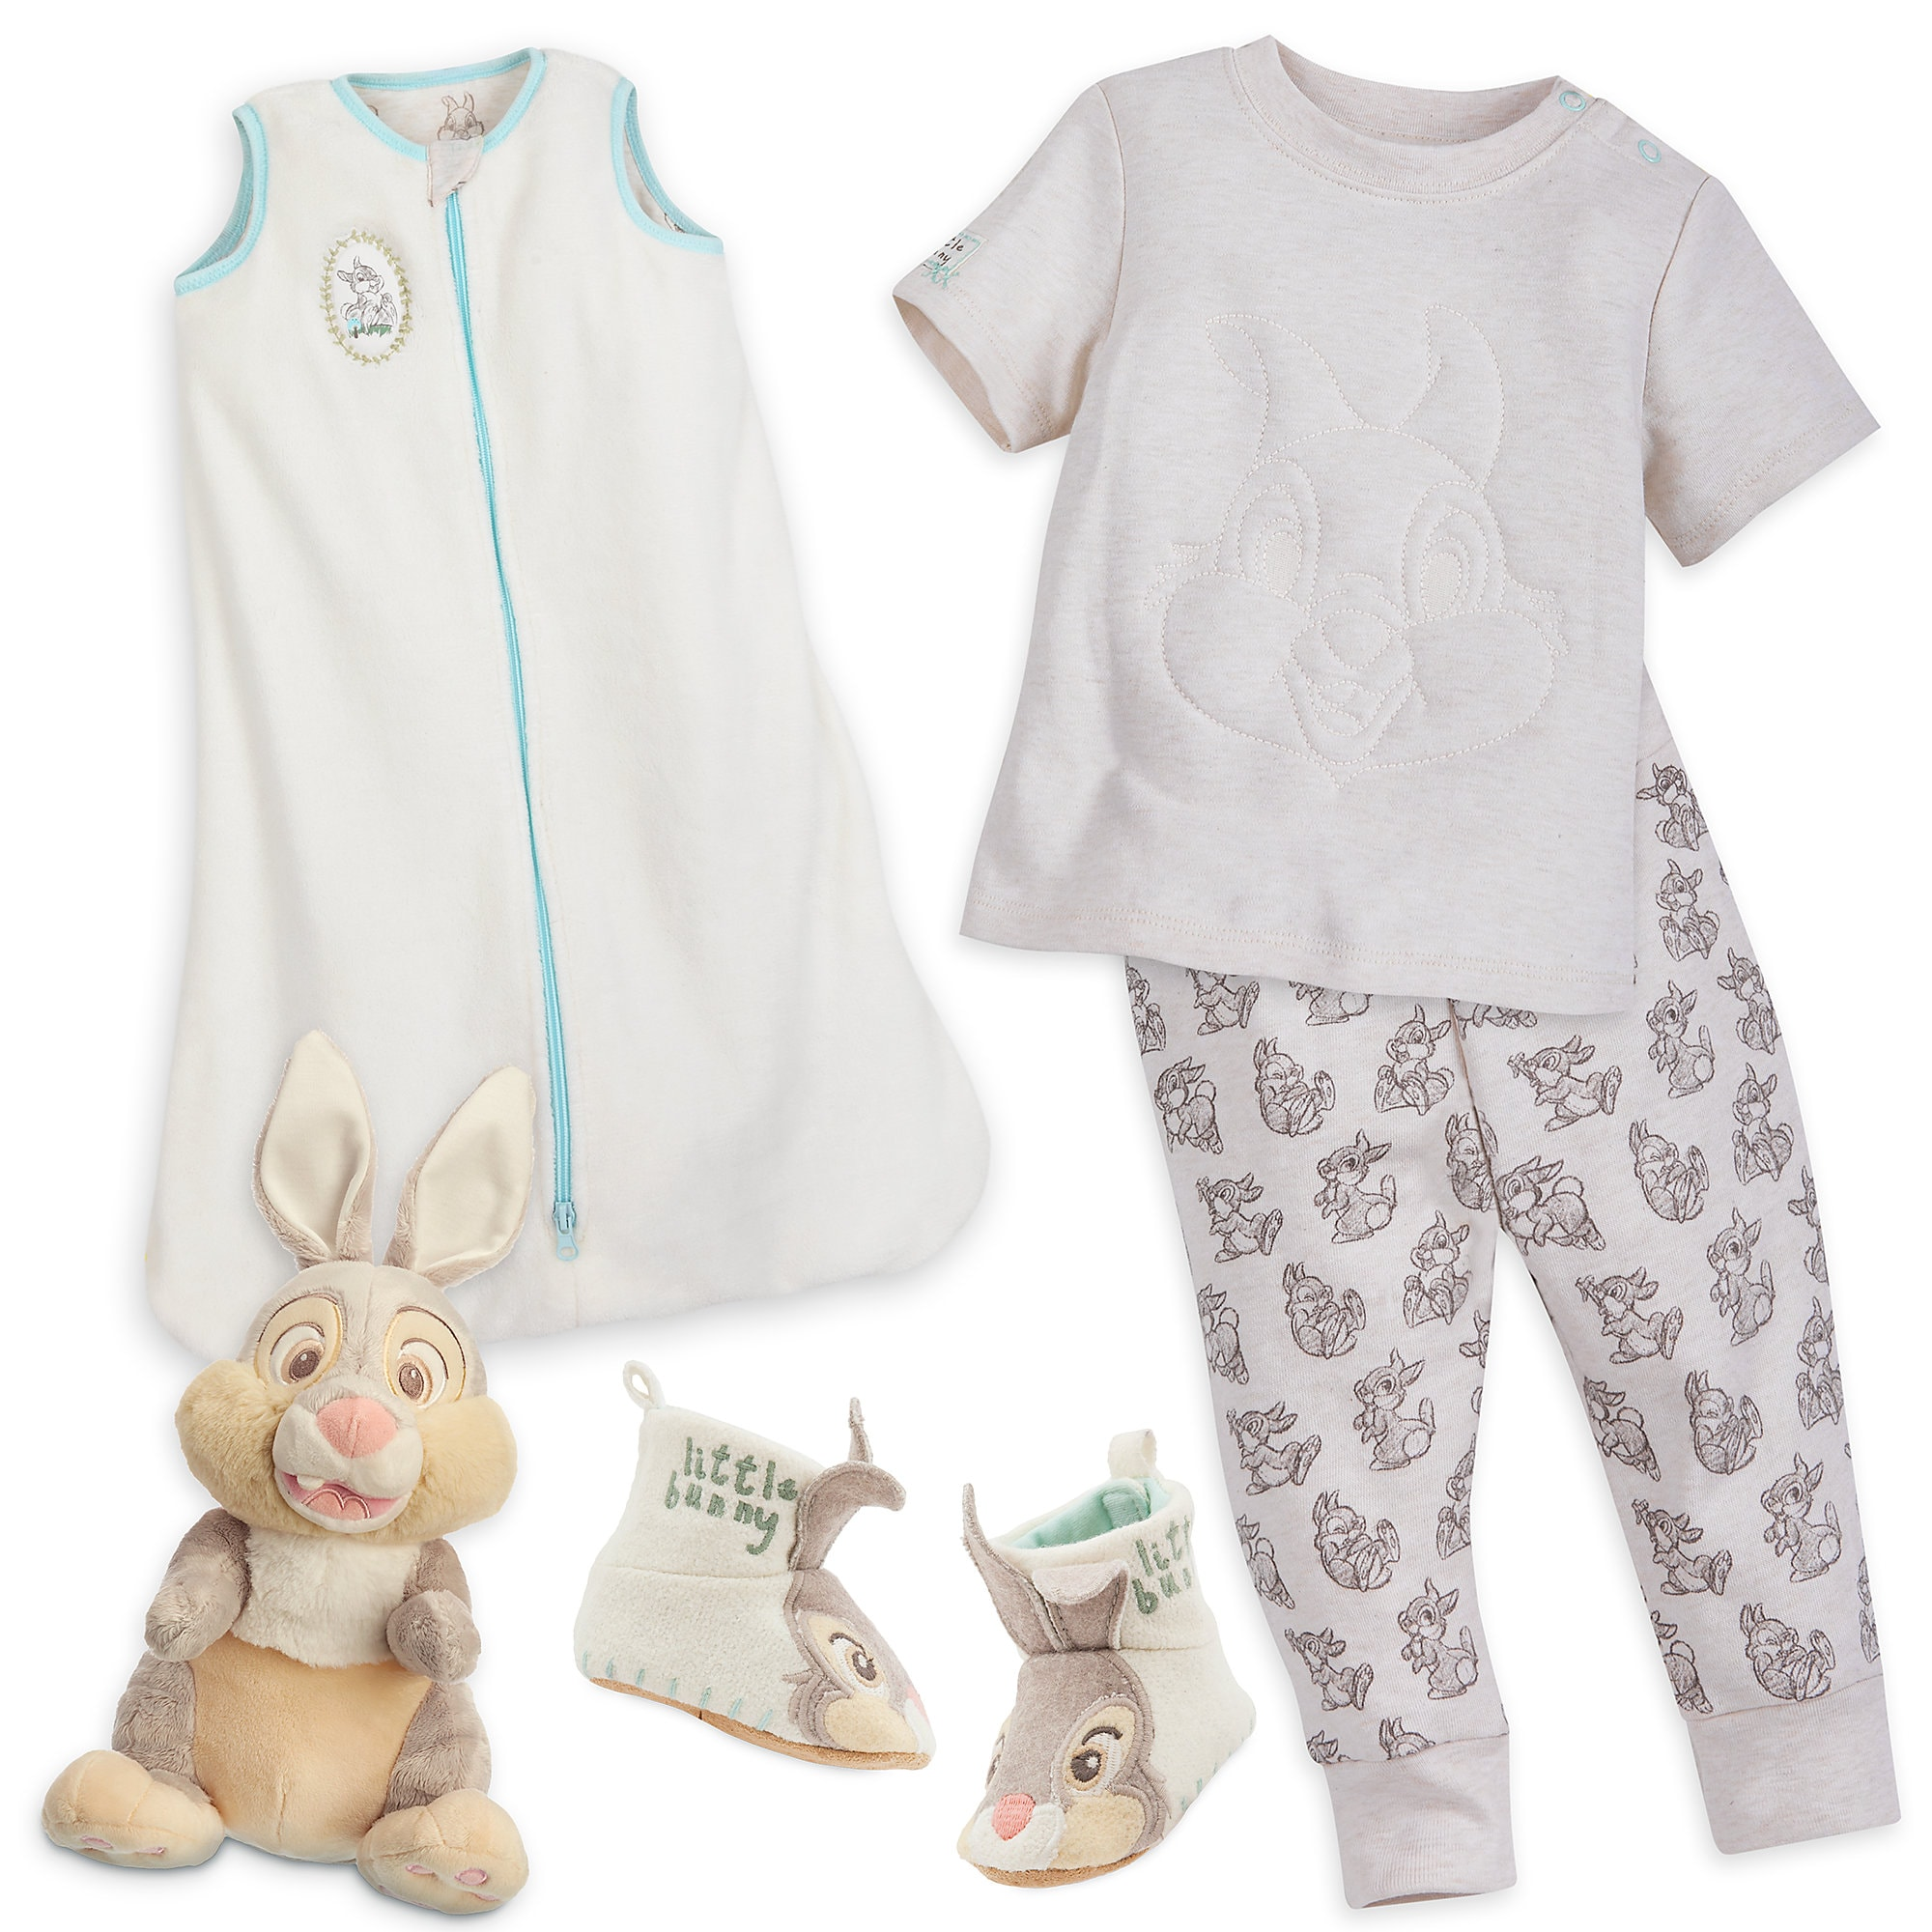 Thumper Sleepwear Collection for Baby